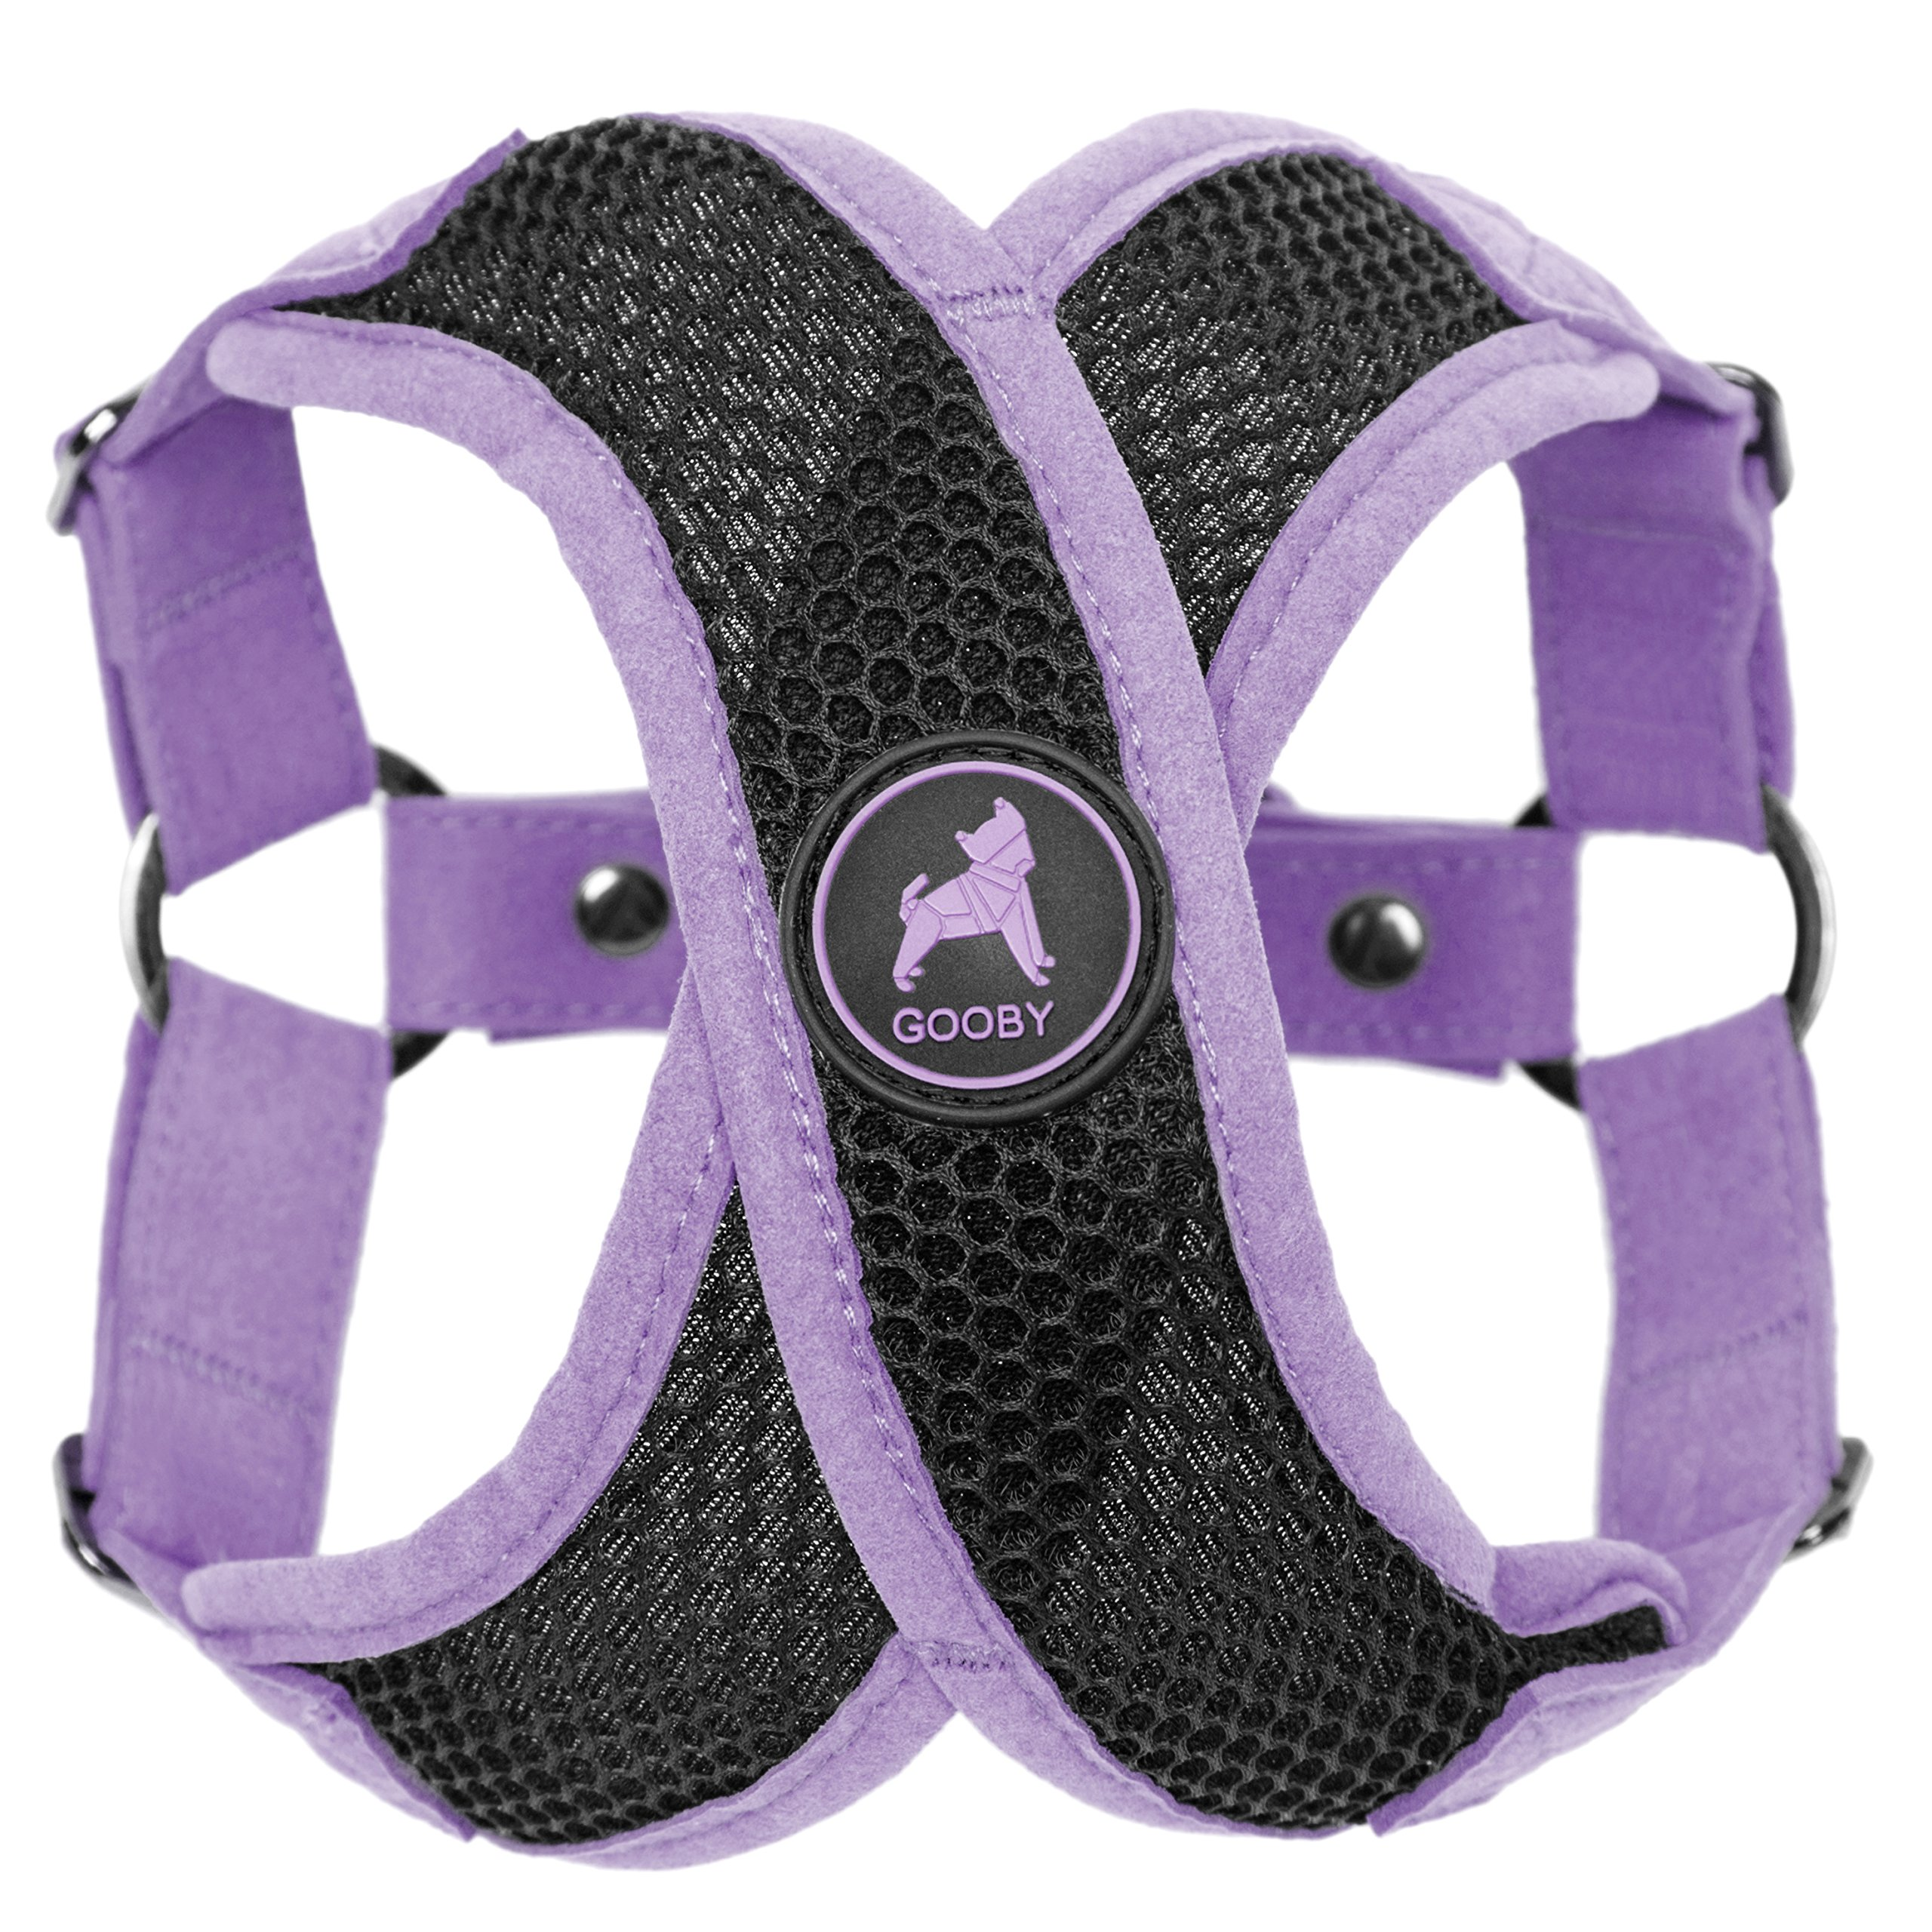 Gooby - Active X Step-in Harness, Choke Free Small Dog Harness with Synthetic Lambskin Soft Strap, Purple, Large by Gooby